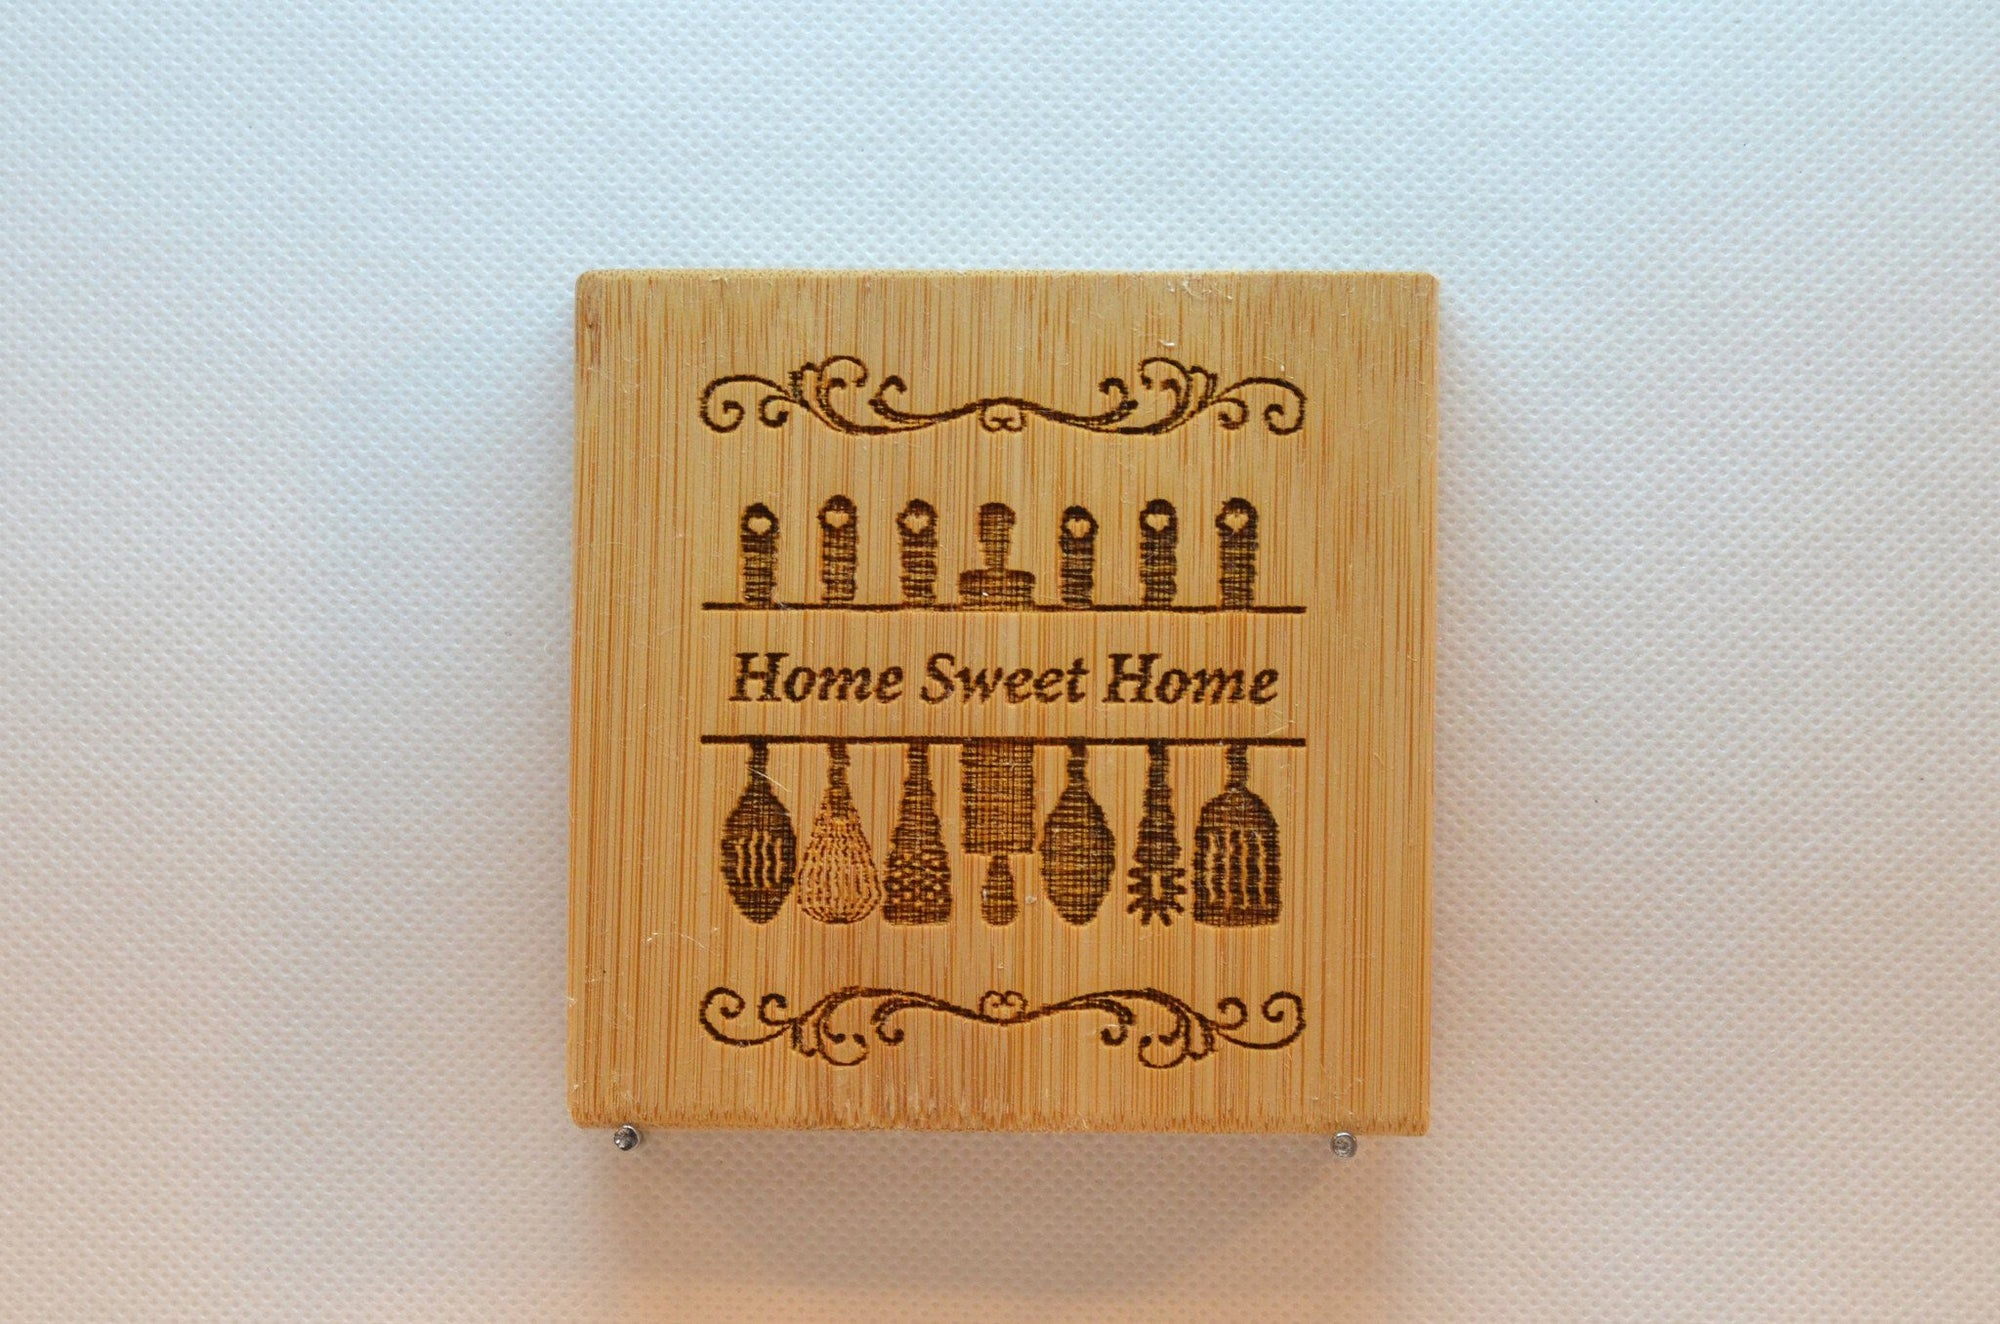 Laser Engraved Bamboo Coaster - Utensils with Home Sweet Home